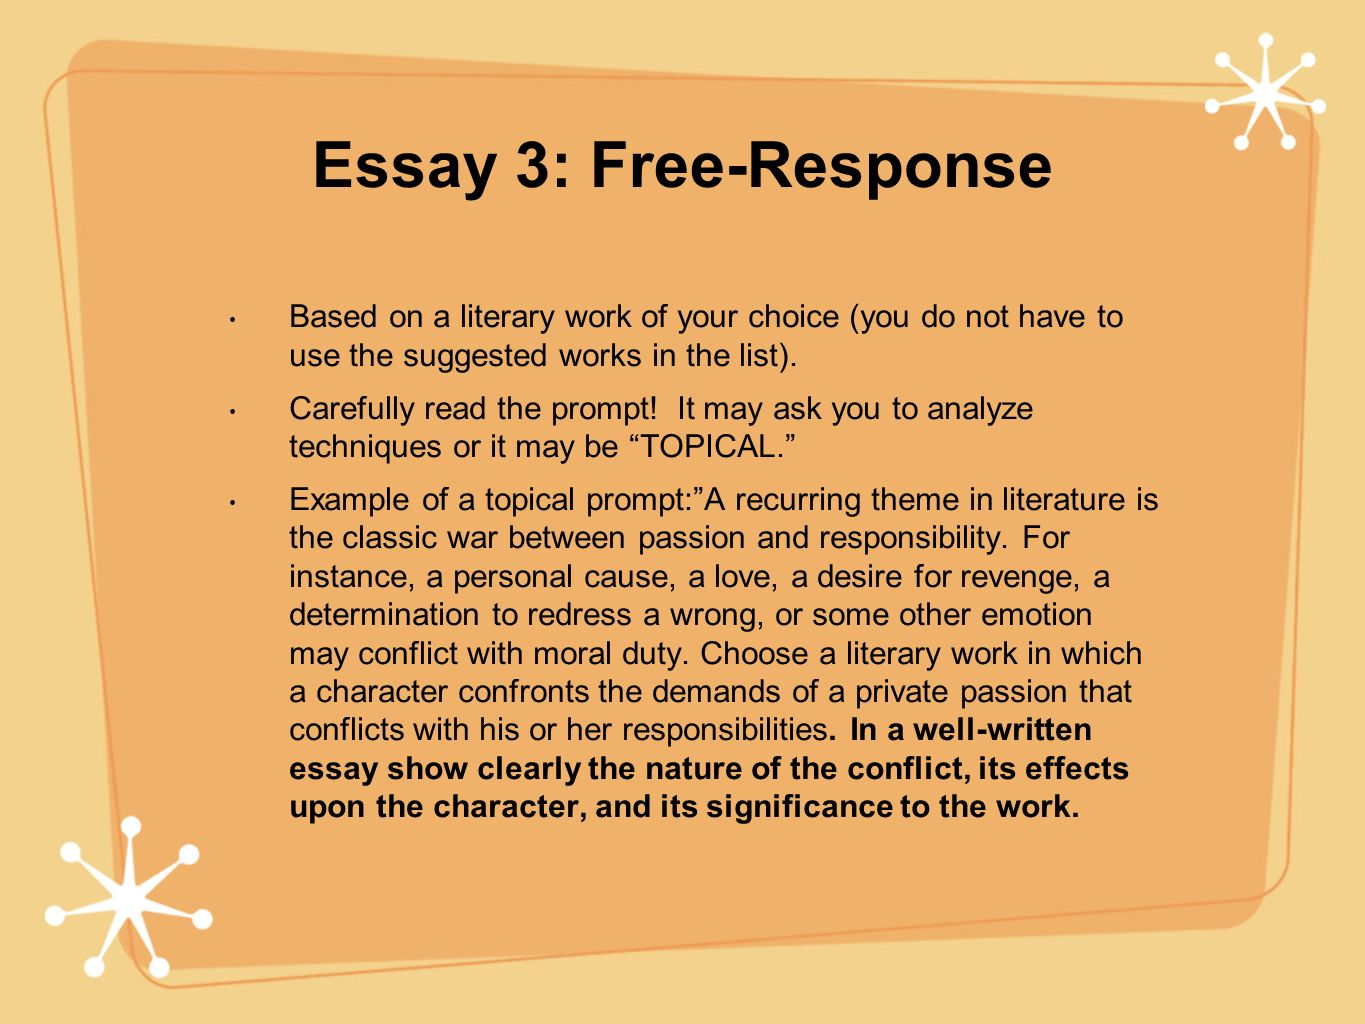 Essay 3: Free-Response Based on a literary work of your choice (you do not have to use the suggested works in the list).